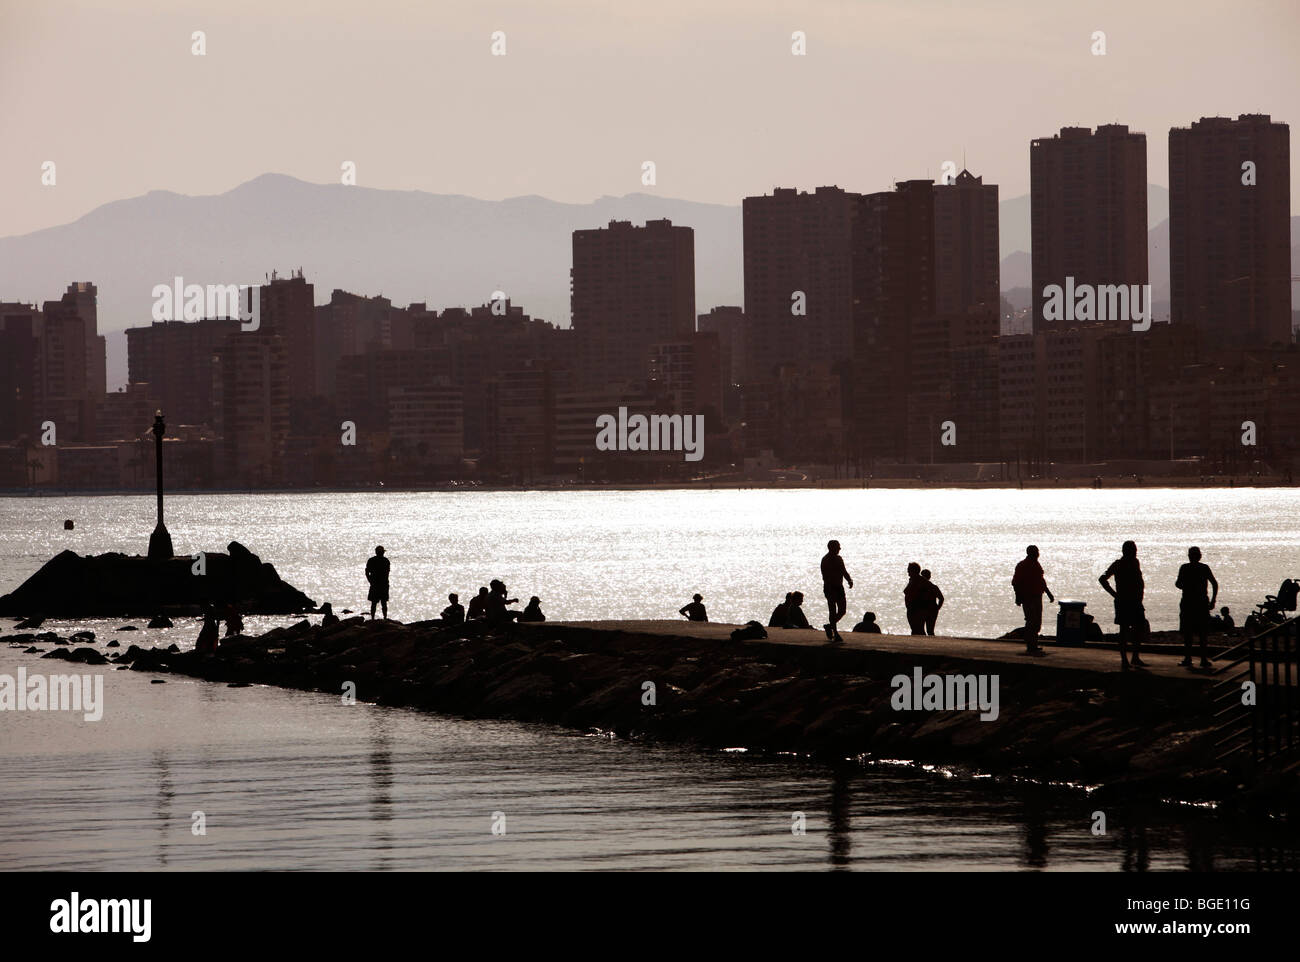 Skyline of benidorm costa blanca alicante spain europe - Stock uno alicante ...